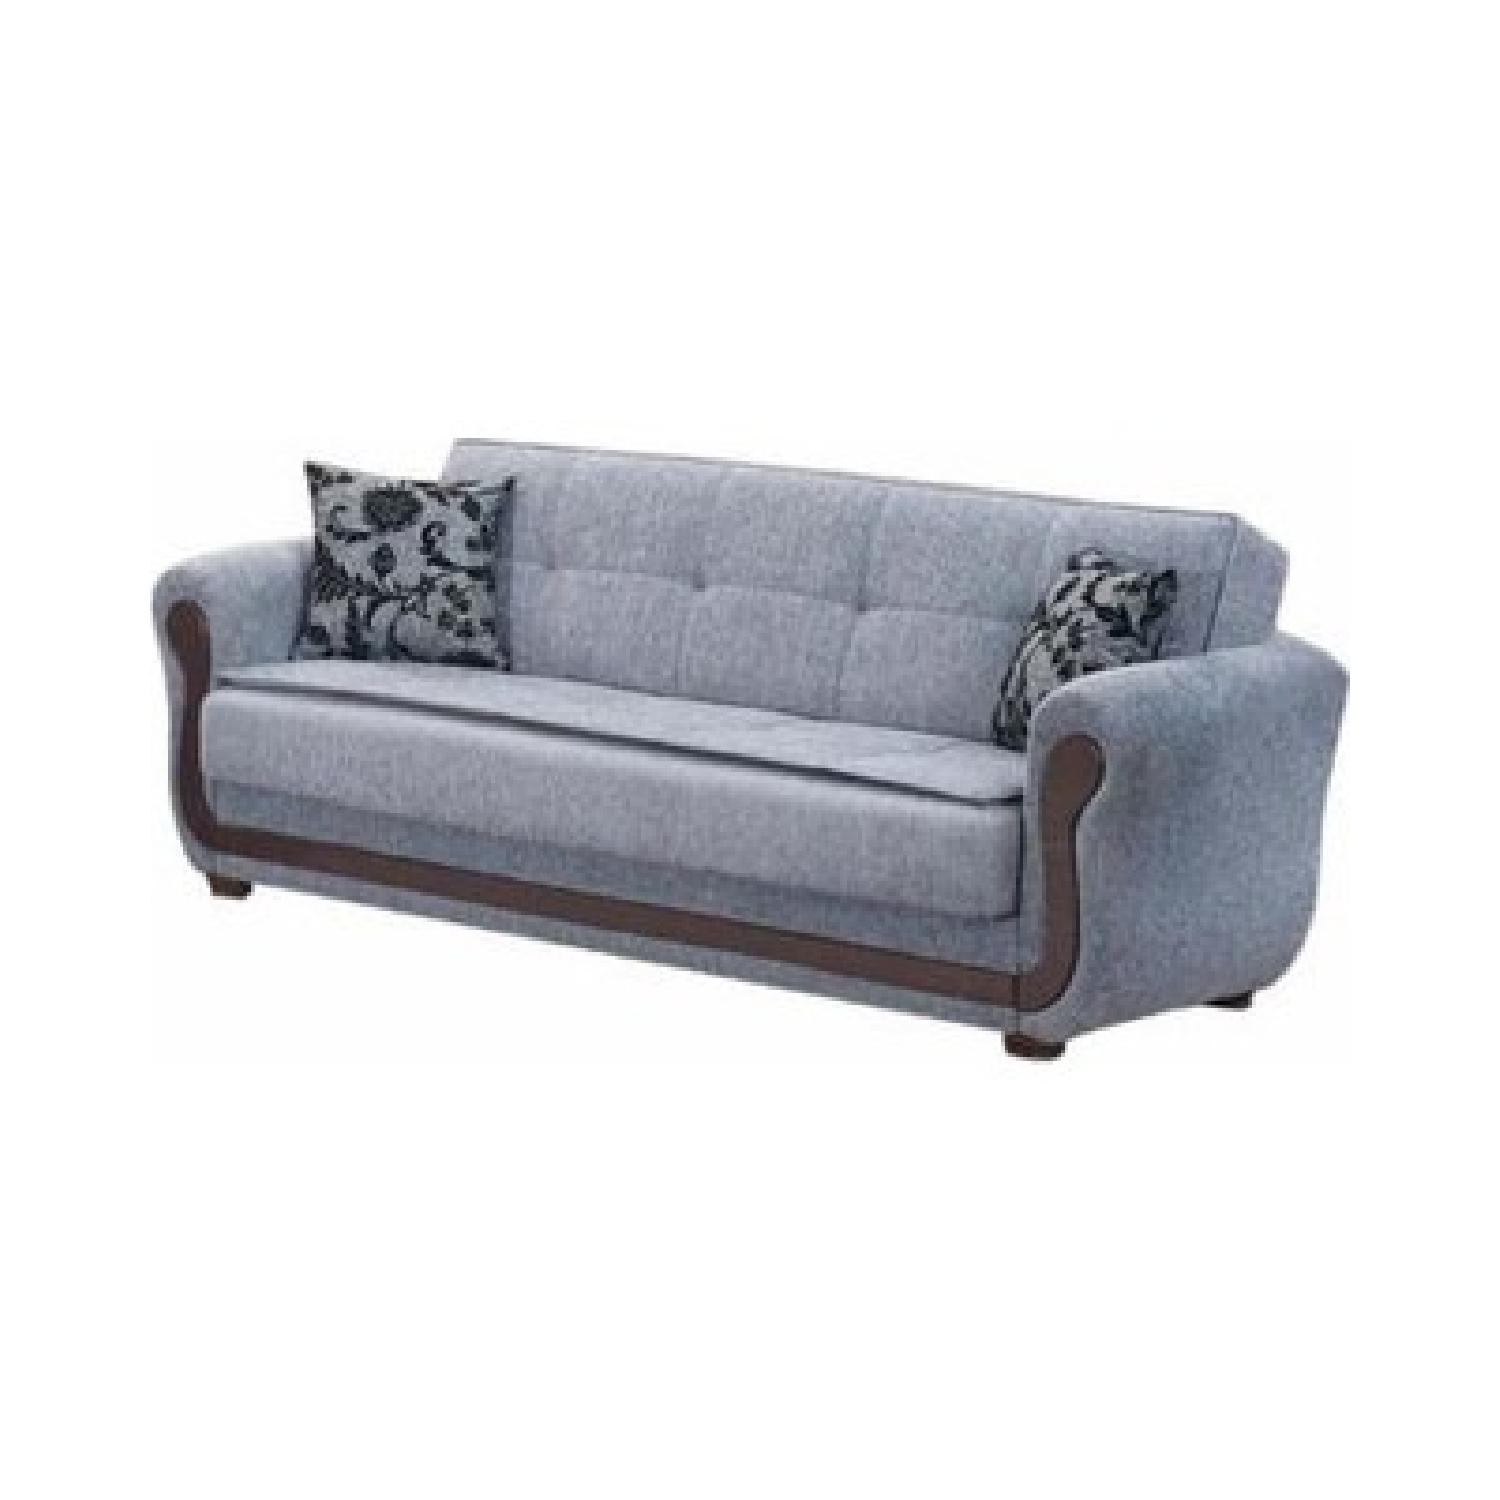 dwr bay sleeper sofa review modern leather made in usa surf ave grey aptdeco